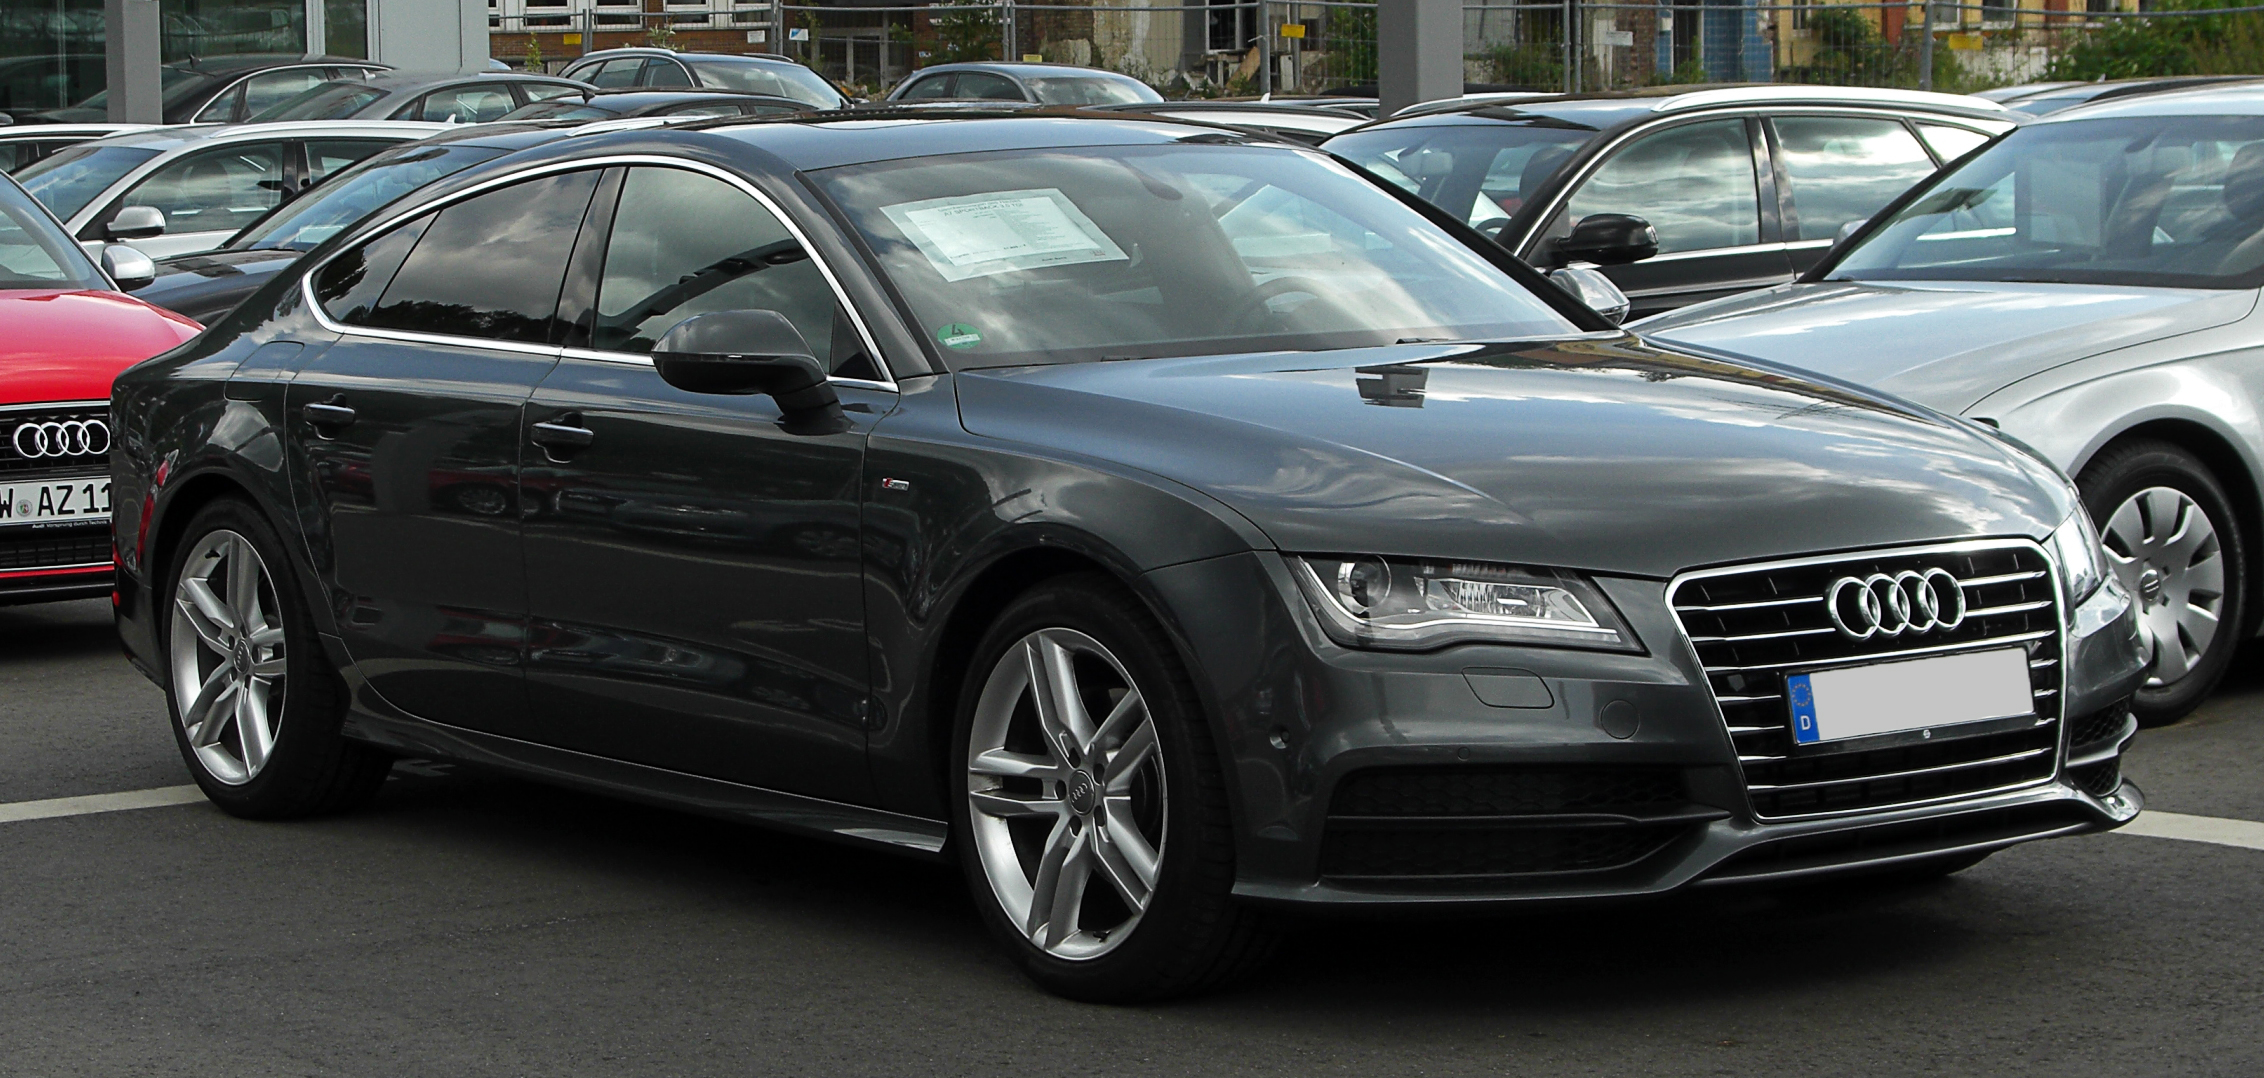 file audi a7 sportback 3 0 tdi quattro s line. Black Bedroom Furniture Sets. Home Design Ideas